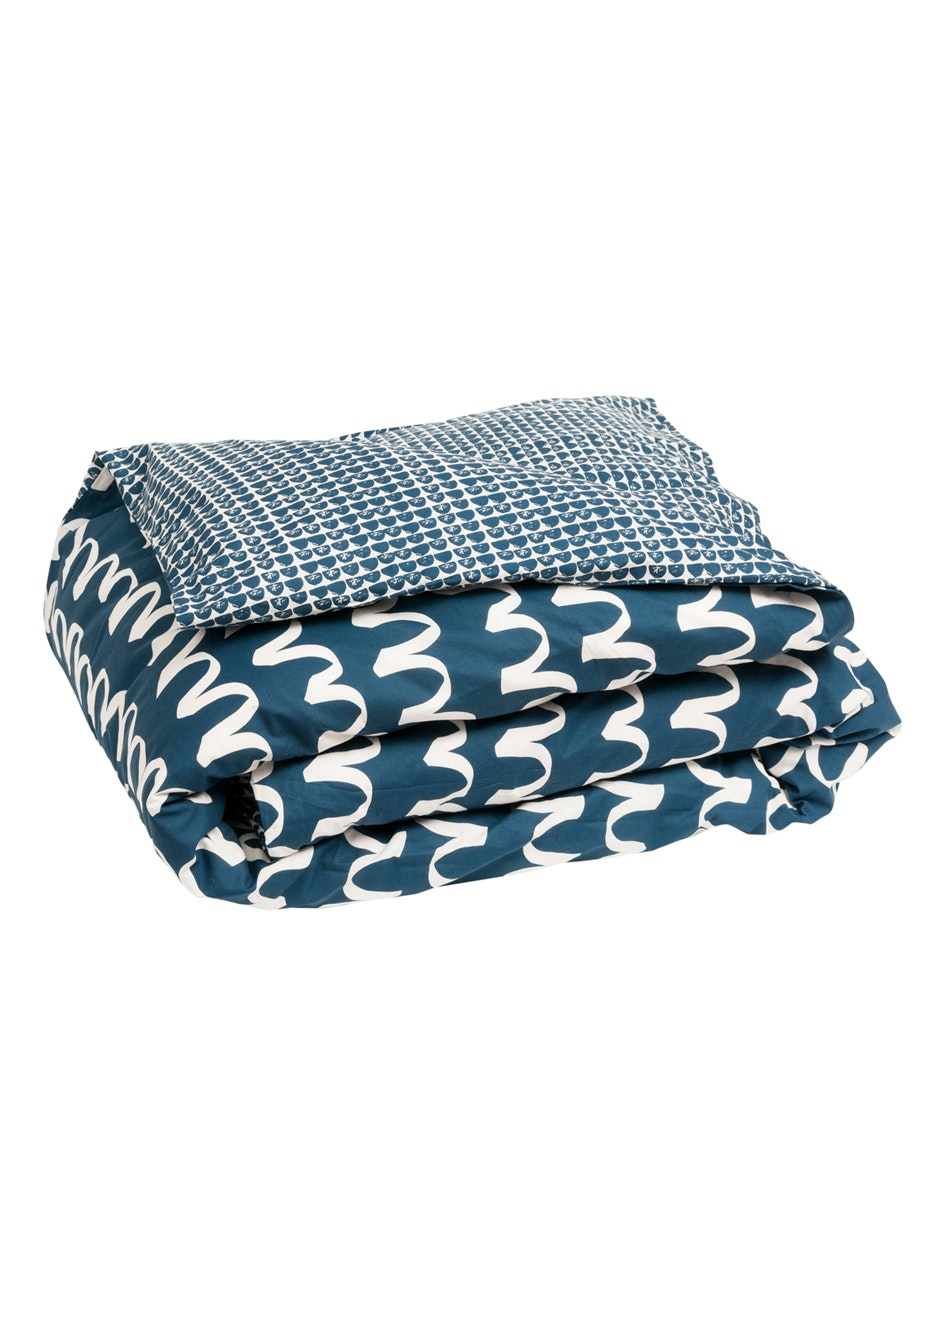 General Eclectic - BlueWaves Duvet Cover - King Single